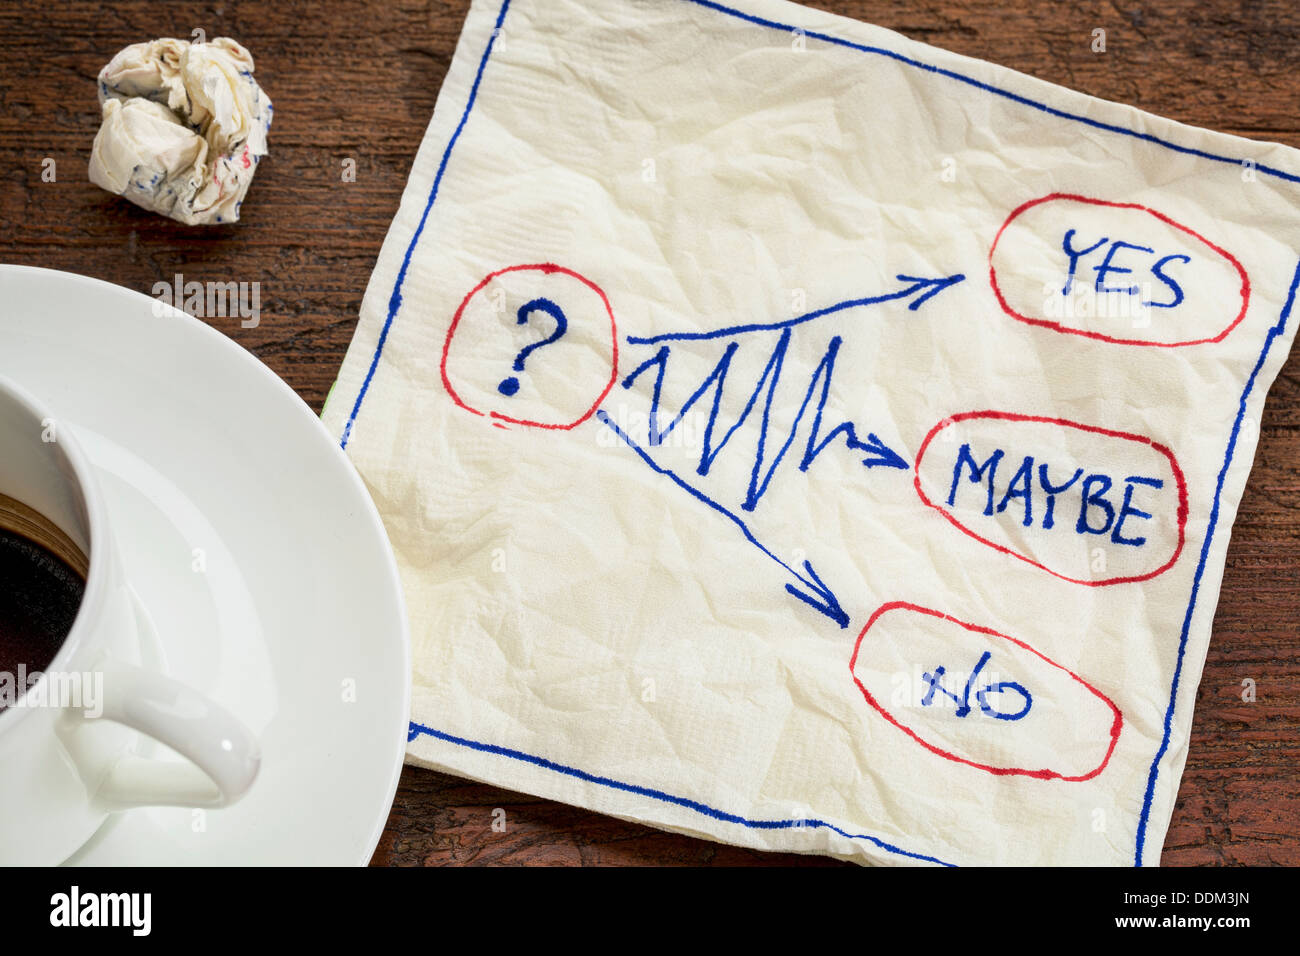 yes, no, maybe - hesitation or decision concept - napkin doodle with a cup of coffee - Stock Image